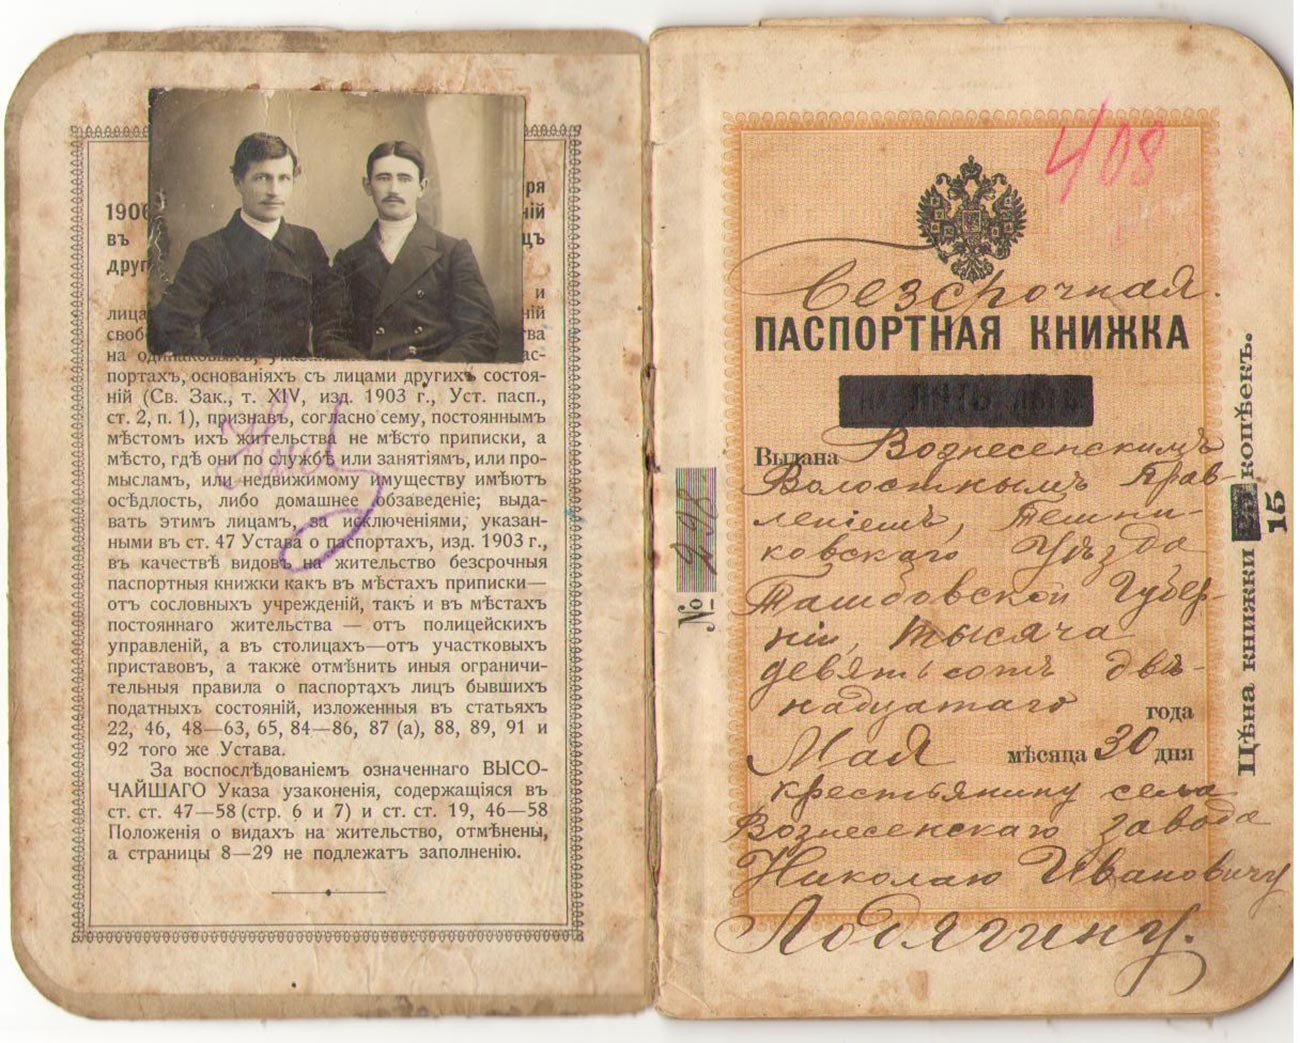 A passport of the Russian Empire